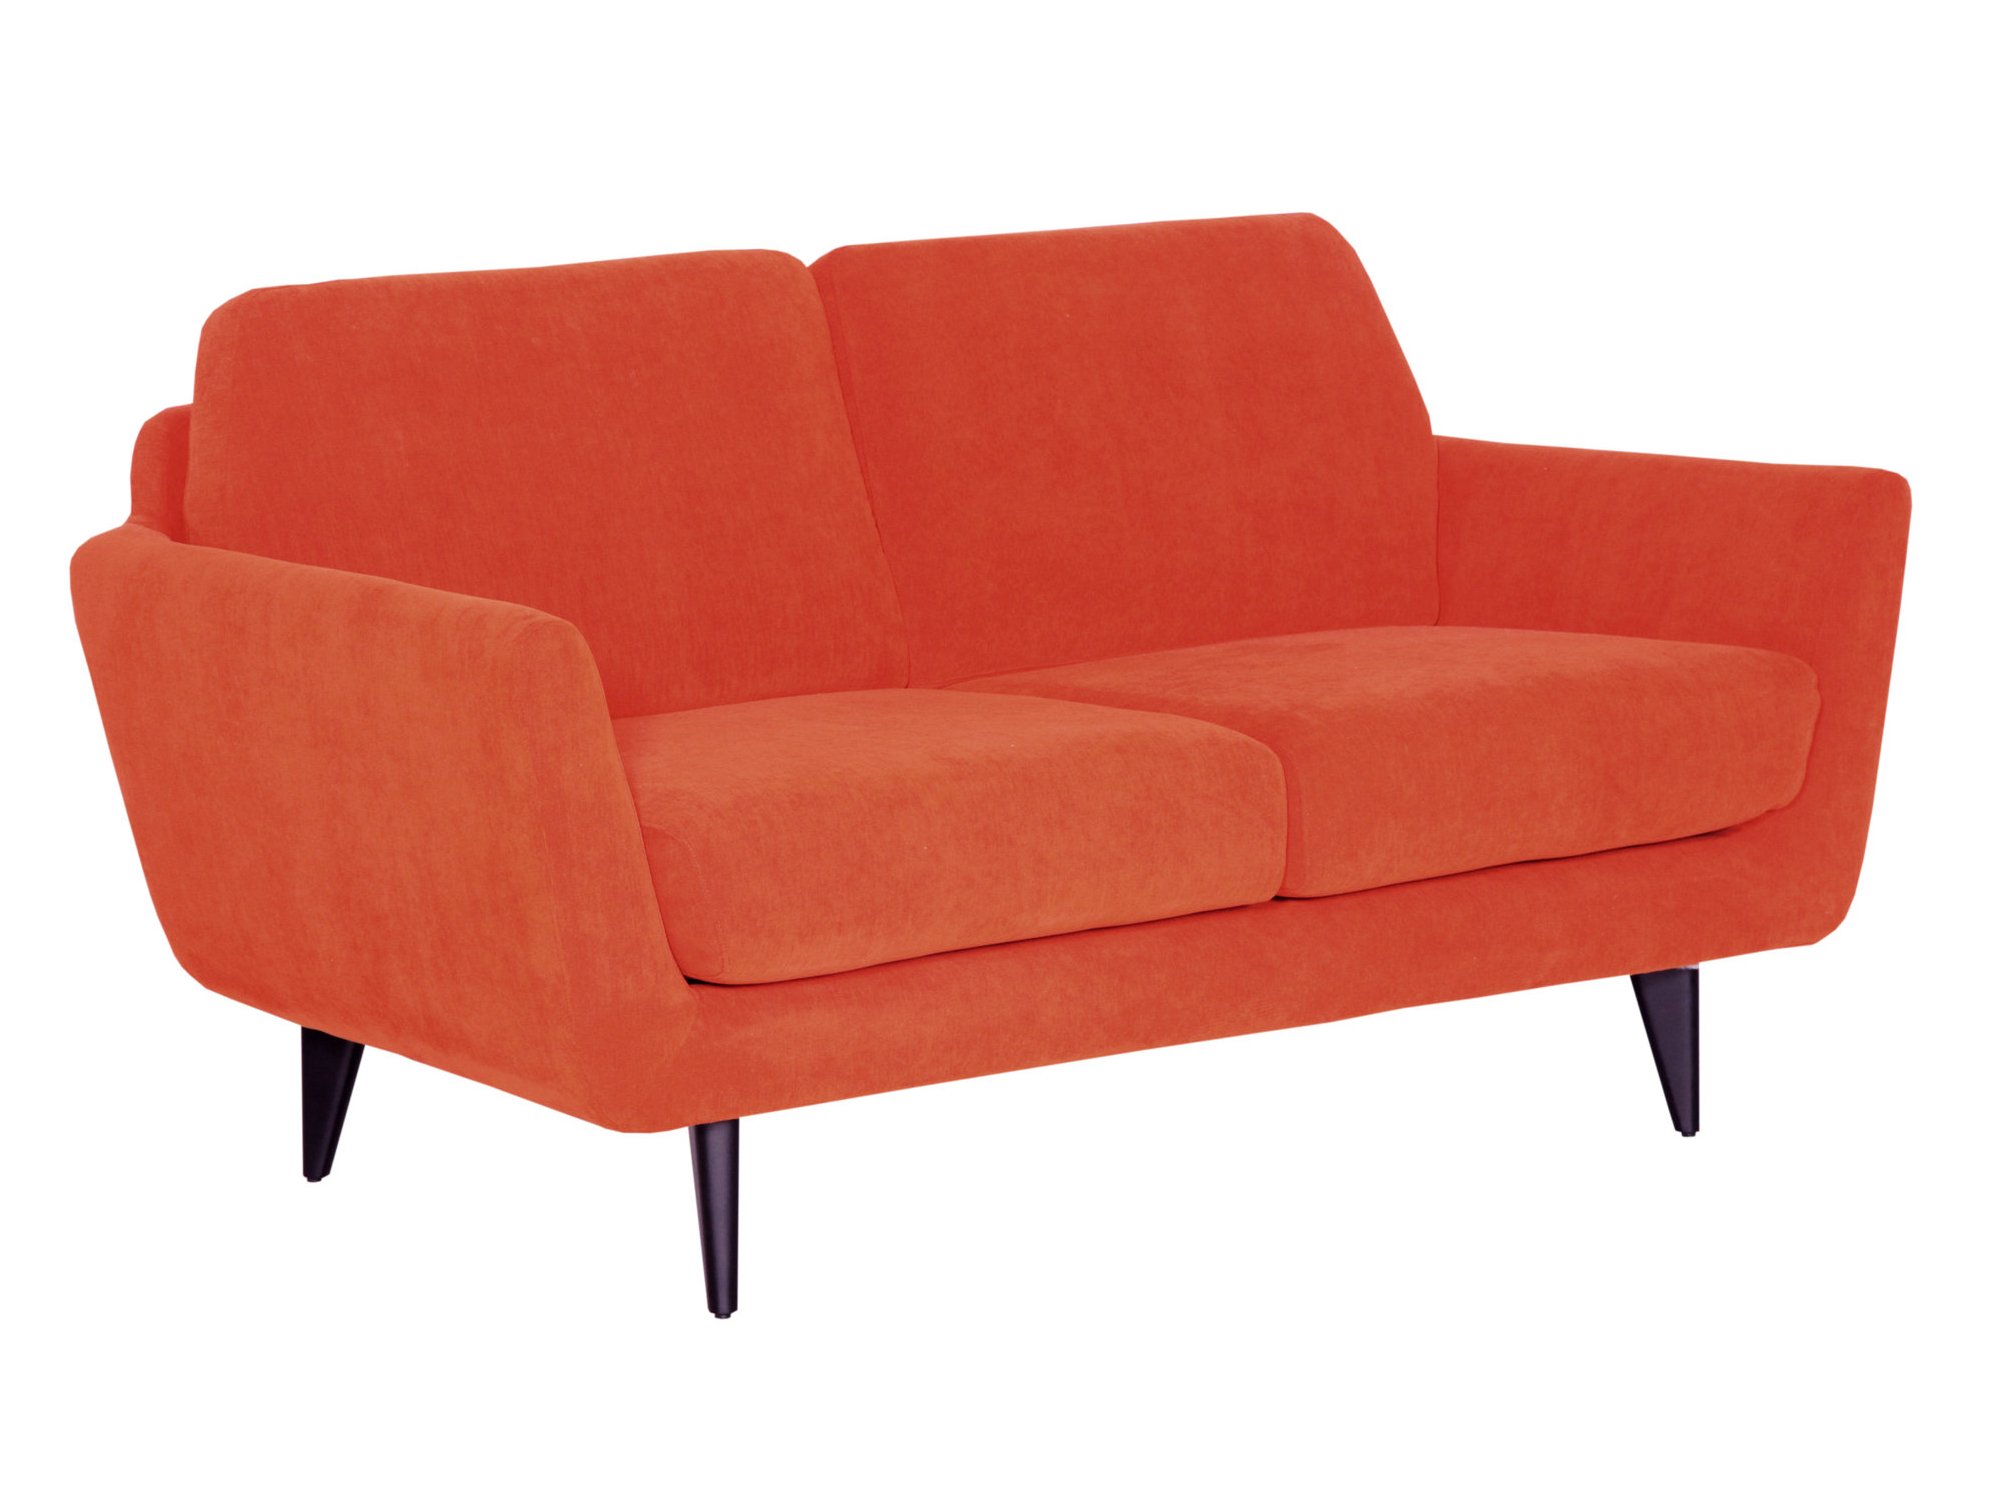 Ivy 2 seater sofa ivy collection by sits parisarafo Choice Image